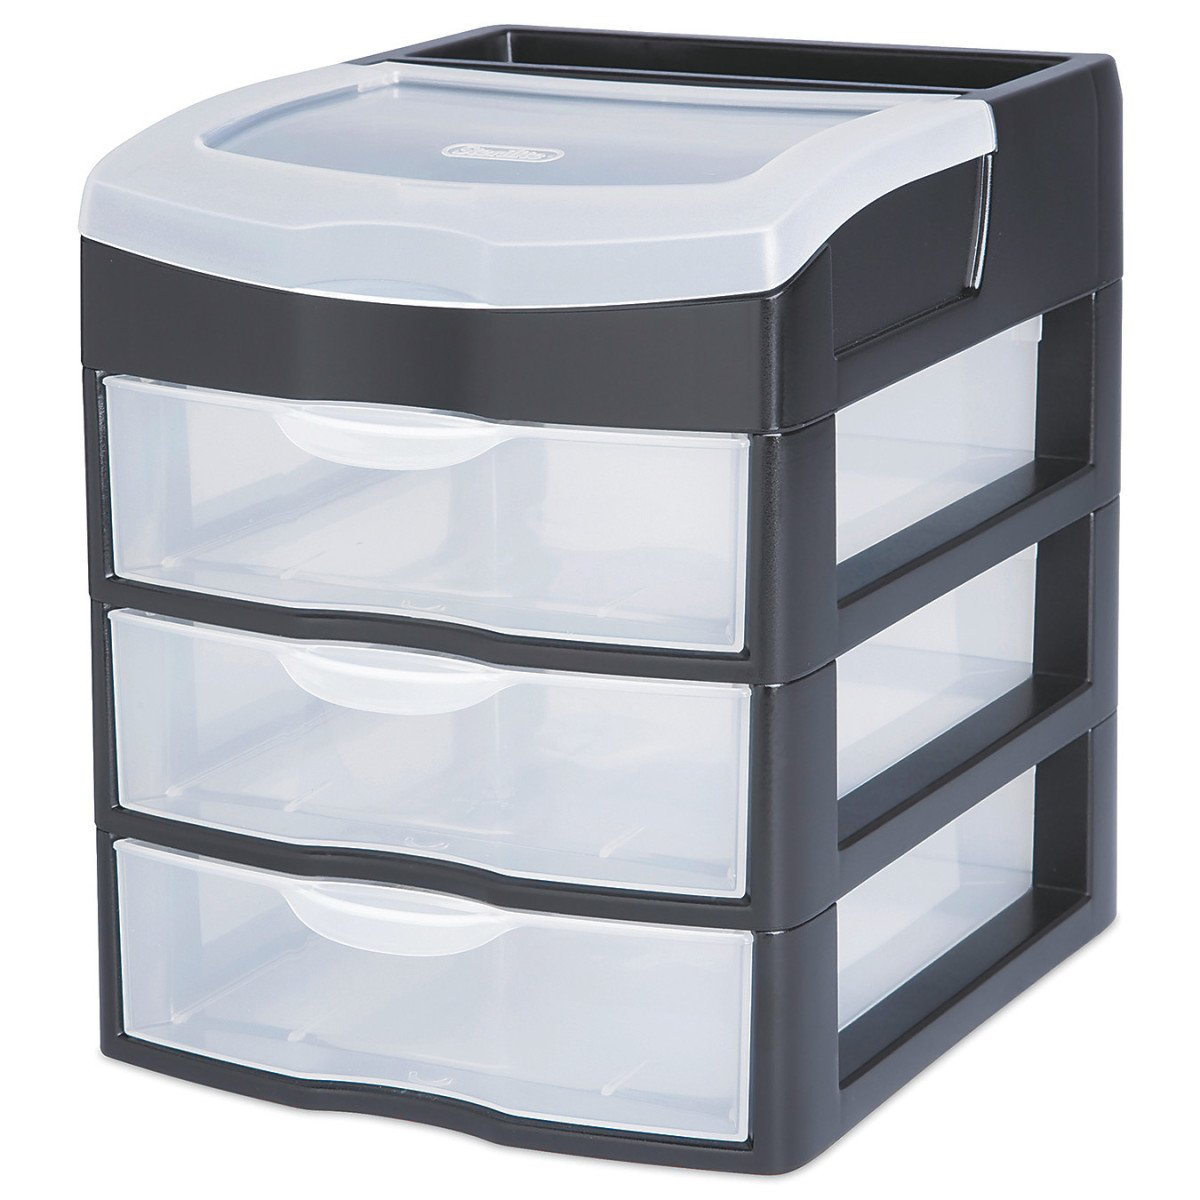 Amazon.com Sterilite 20639004 3 Drawer Clearview Desktop Unit Home u0026 Kitchen  sc 1 st  Amazon.com & Amazon.com: Sterilite 20639004 3 Drawer Clearview Desktop Unit: Home ...